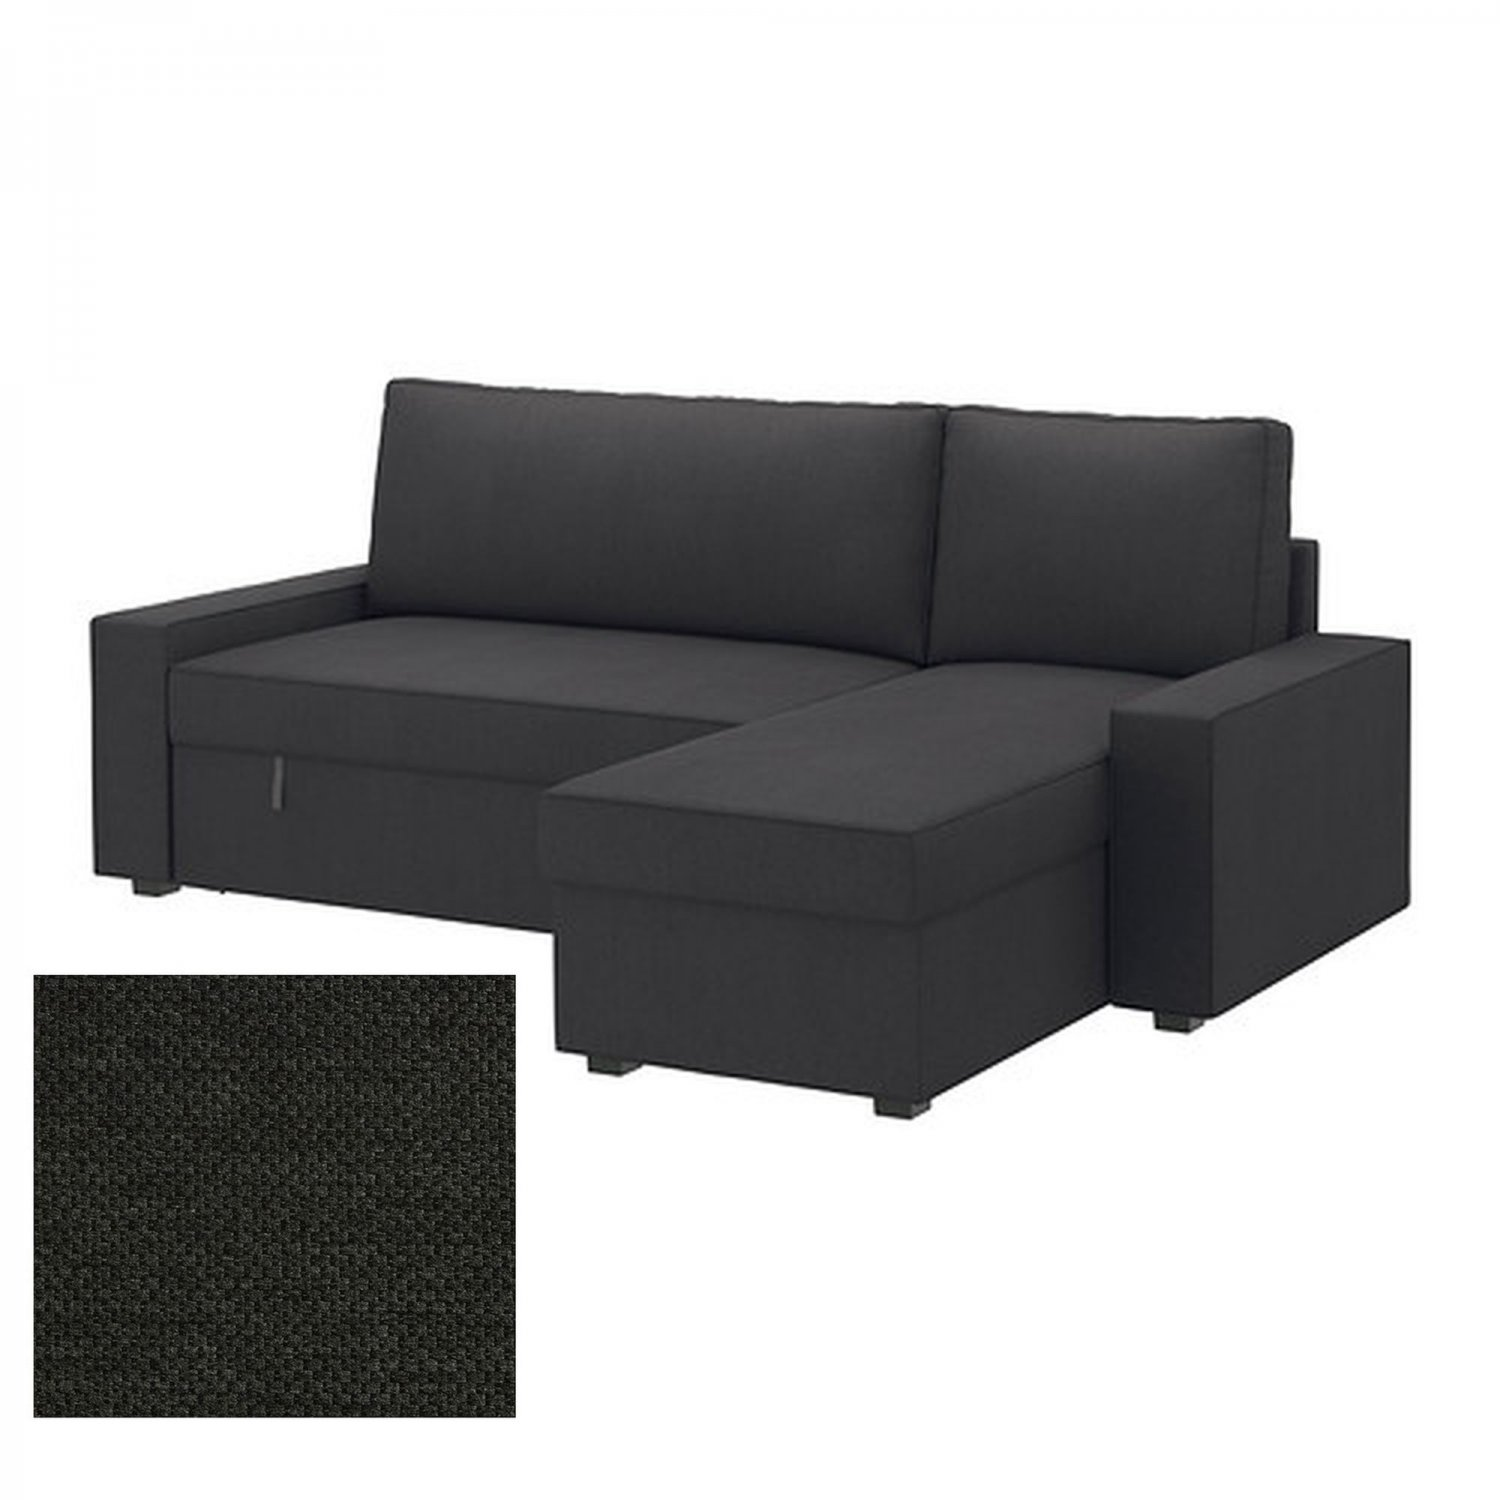 Ikea vilasund sofa bed with chaise longue slipcover sofabed cover dansbo dark gray grey - Chaise longue sofa bed ...